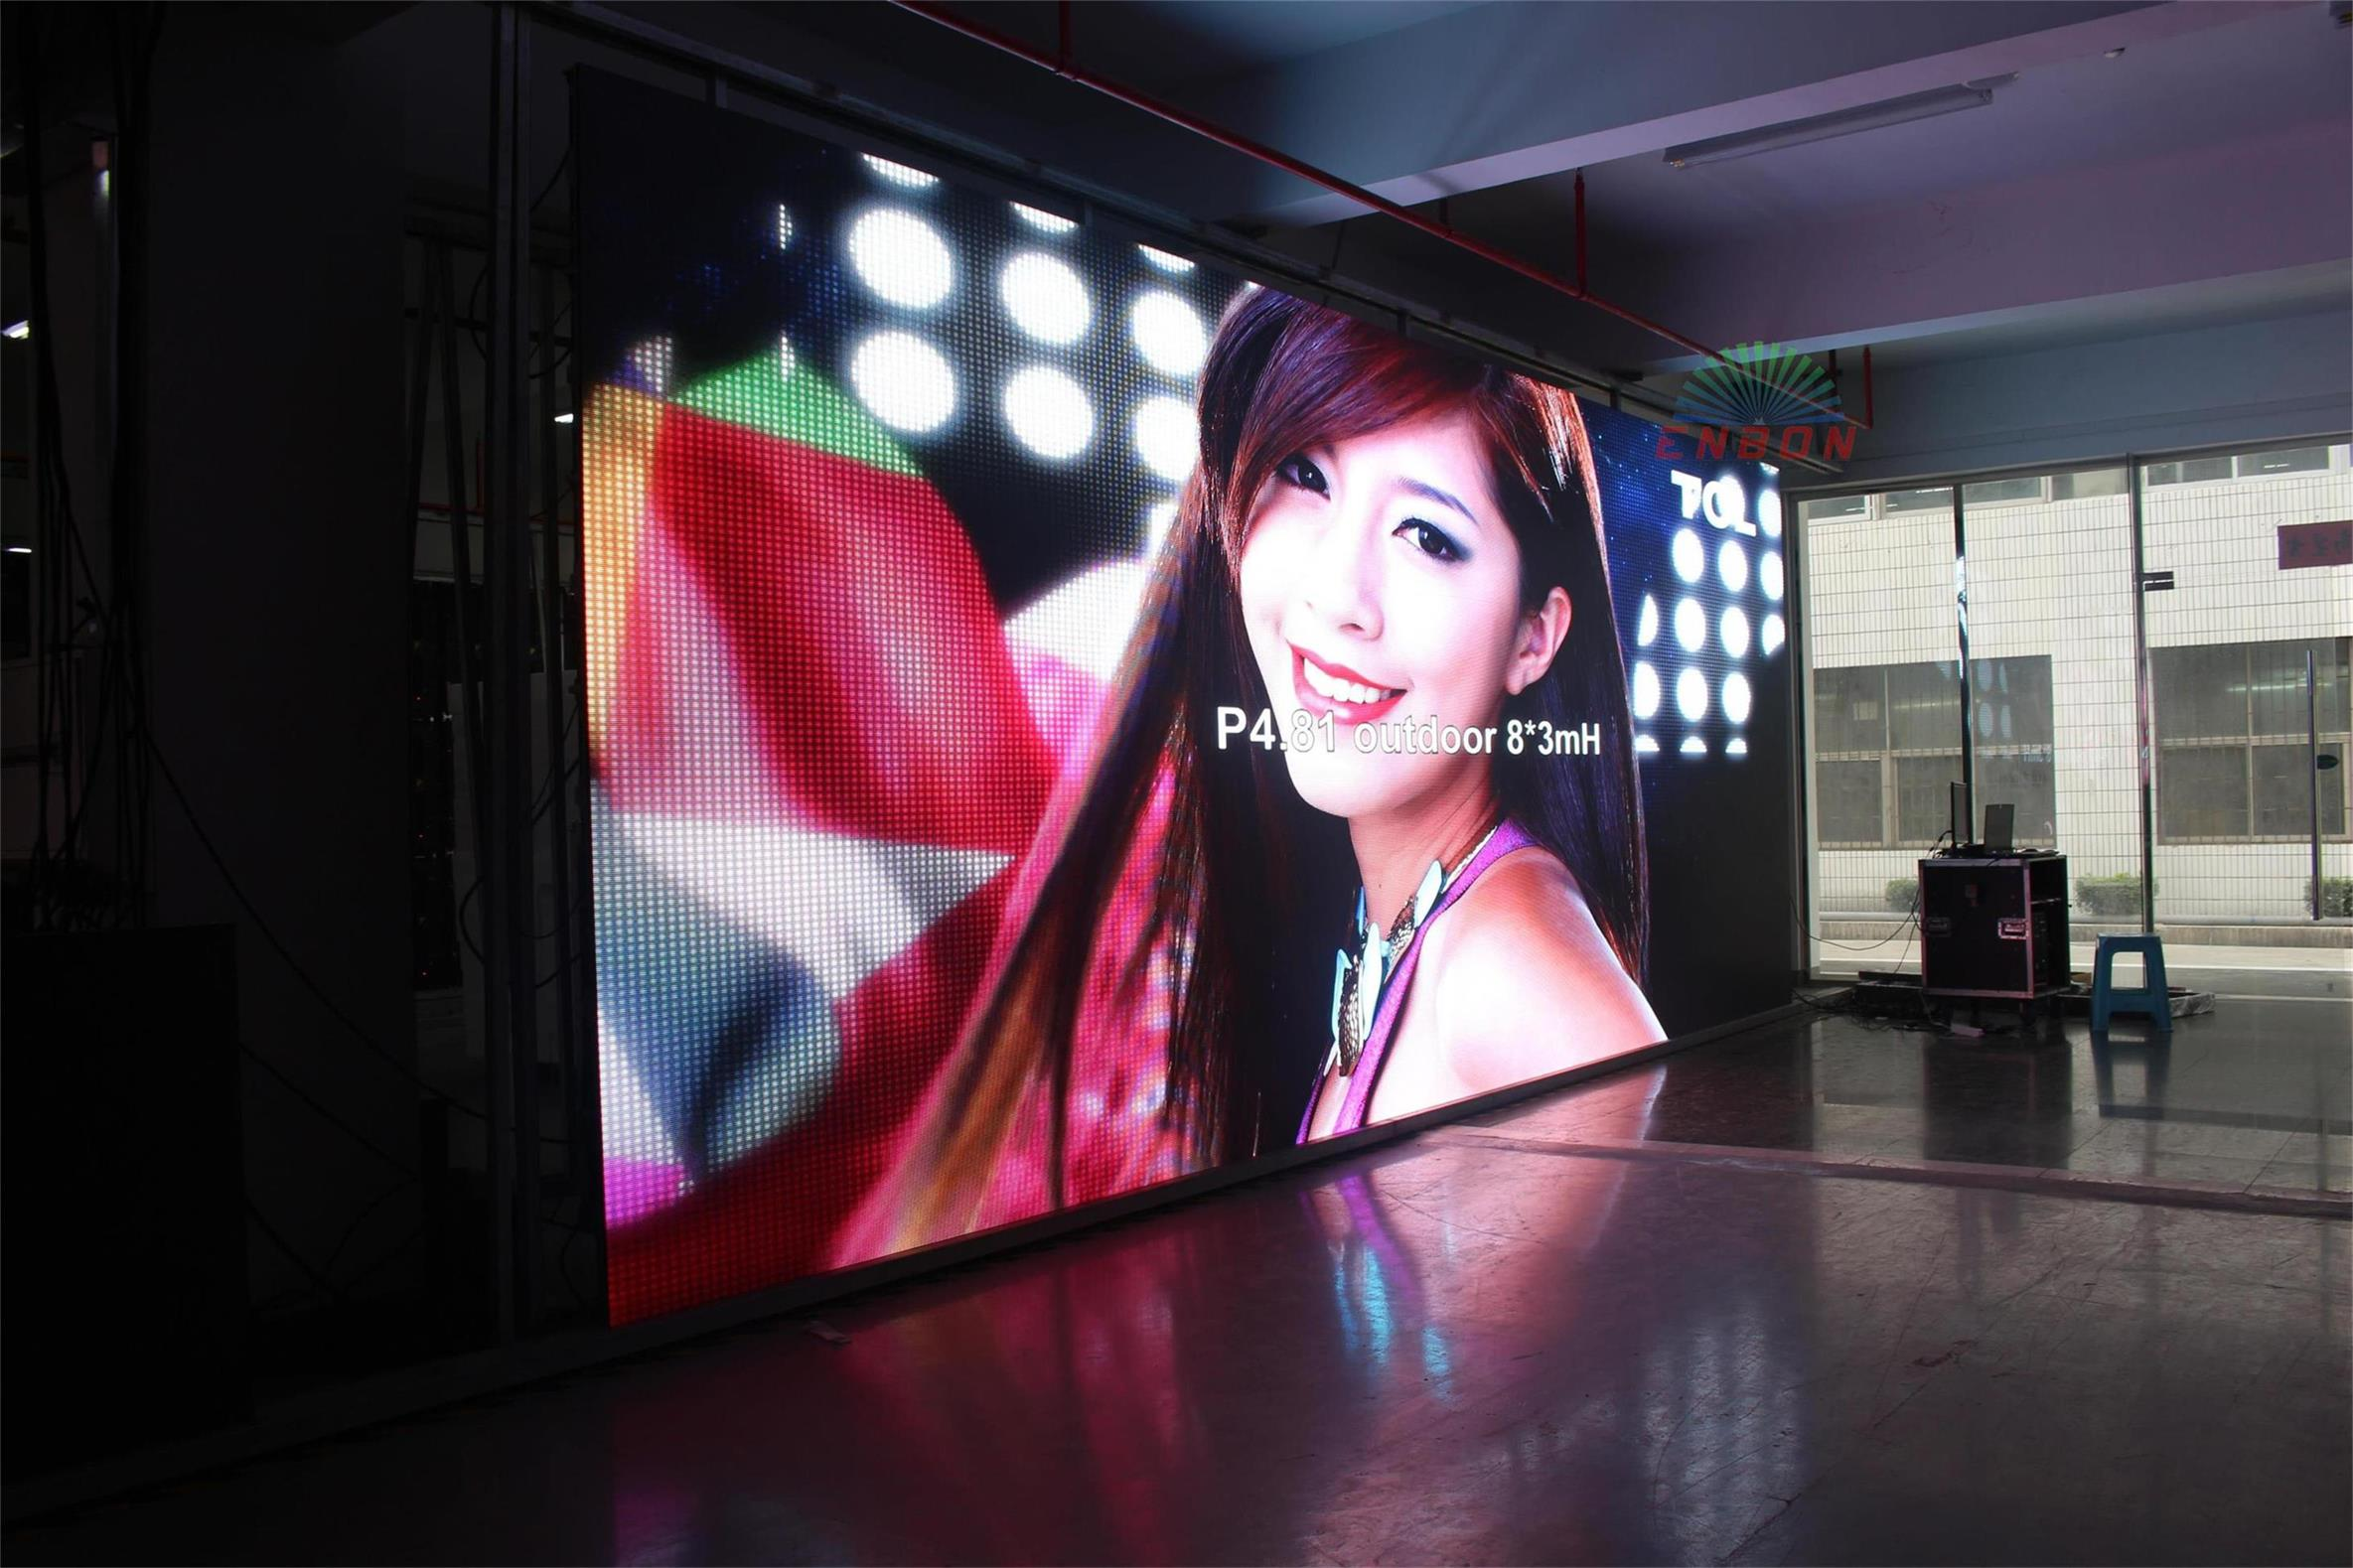 P4.81 Outdoor SMD 3 in 1 500mm*1000mm Rental LED Video Wall on Truss for Music Shows Backgound